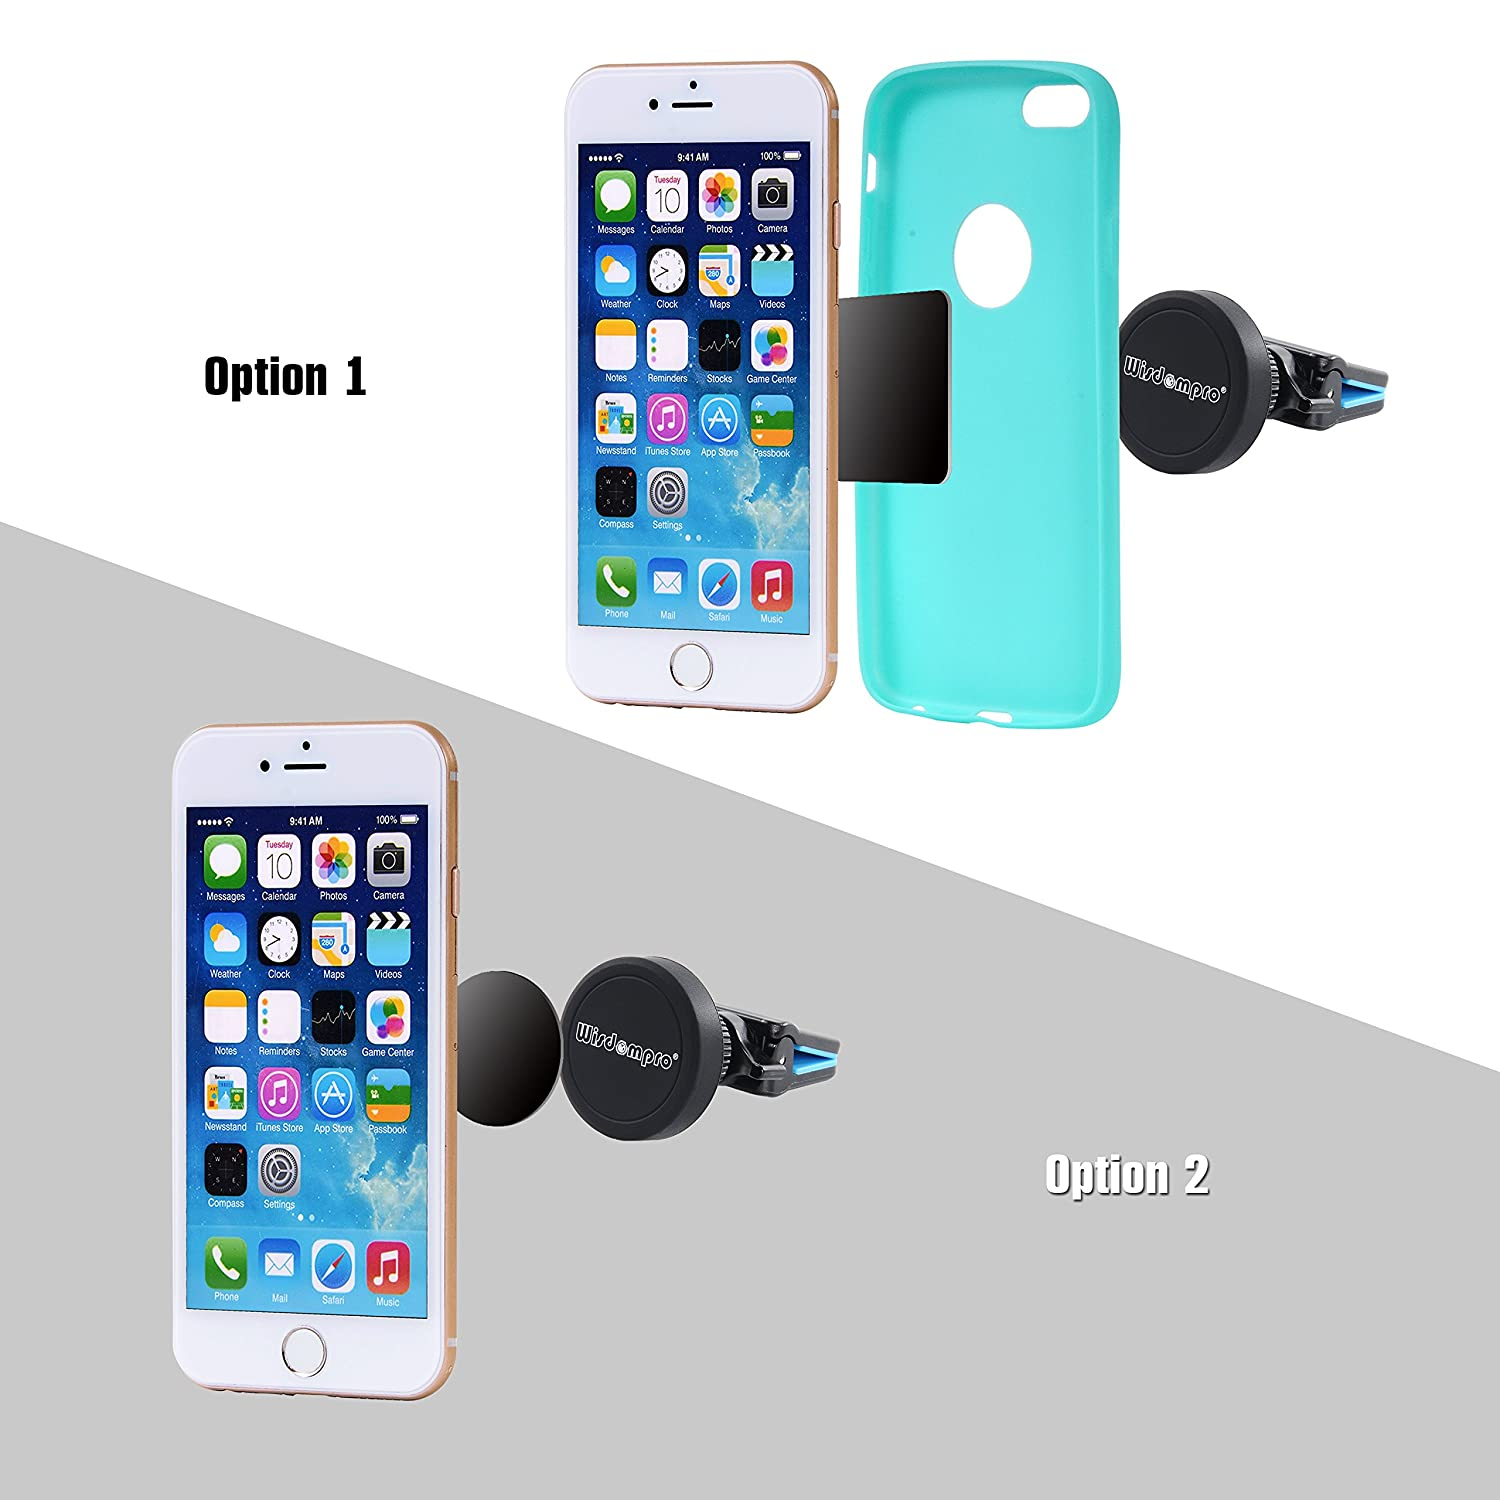 XR 5s 5c SE Plus Wisdompro Car Mount 7 Edge -Black 8 6 Rotating Magnetic Universal Air Vent Cell Phone Mount Holder for iPhone Xs Samsung Galaxy S8 S7 S6 S5 6s